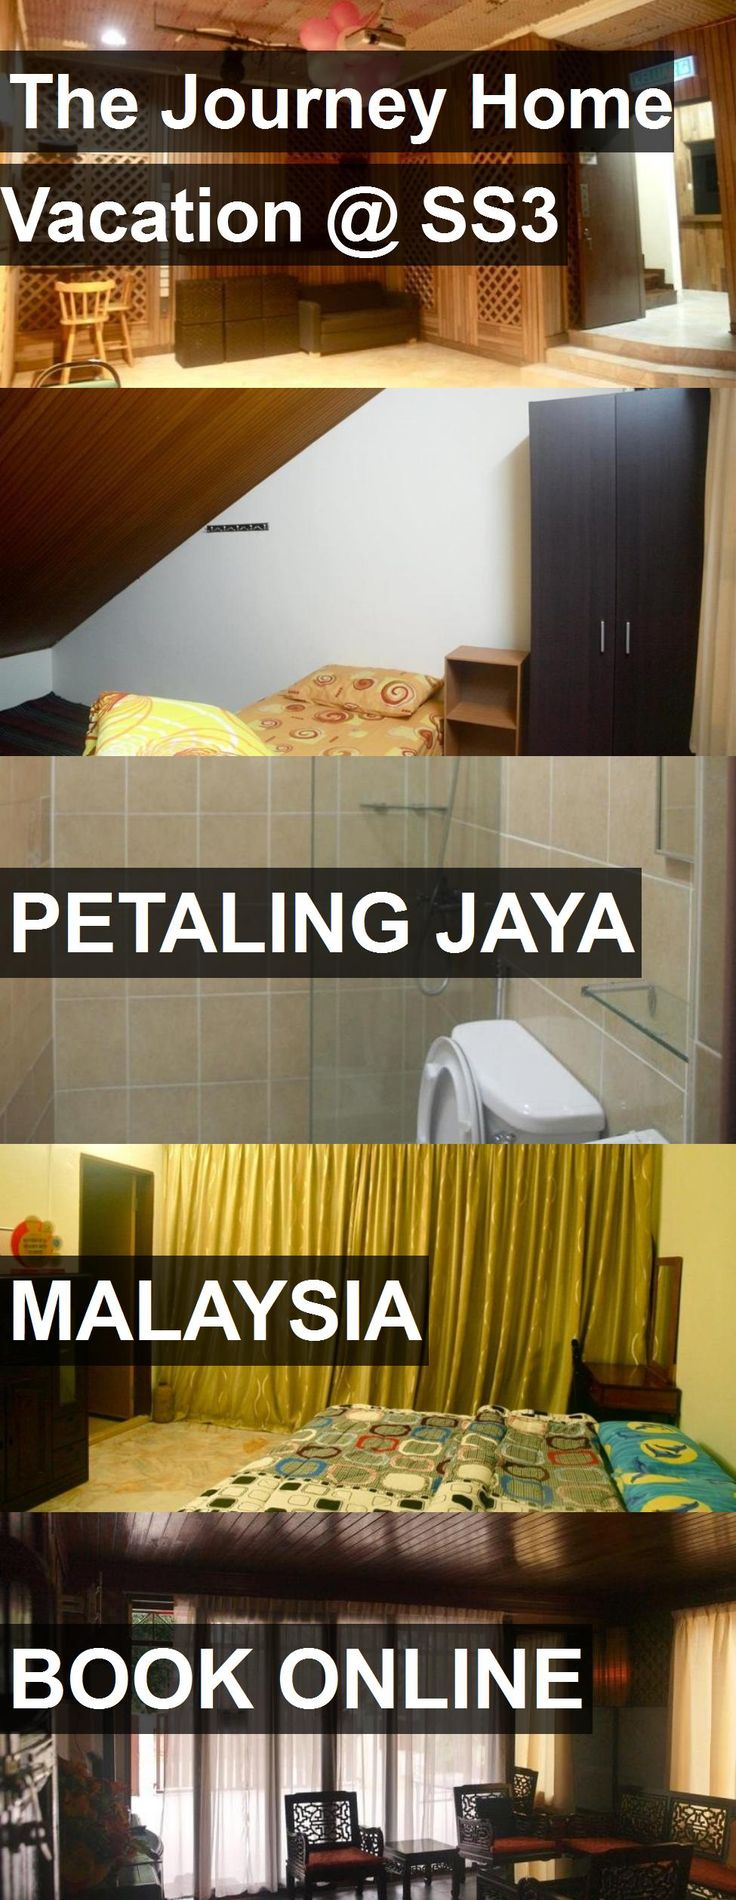 Hotel The Journey Home Vacation @ SS3 in Petaling Jaya, Malaysia. For more information, photos, reviews and best prices please follow the link. #Malaysia #PetalingJaya #travel #vacation #hotel